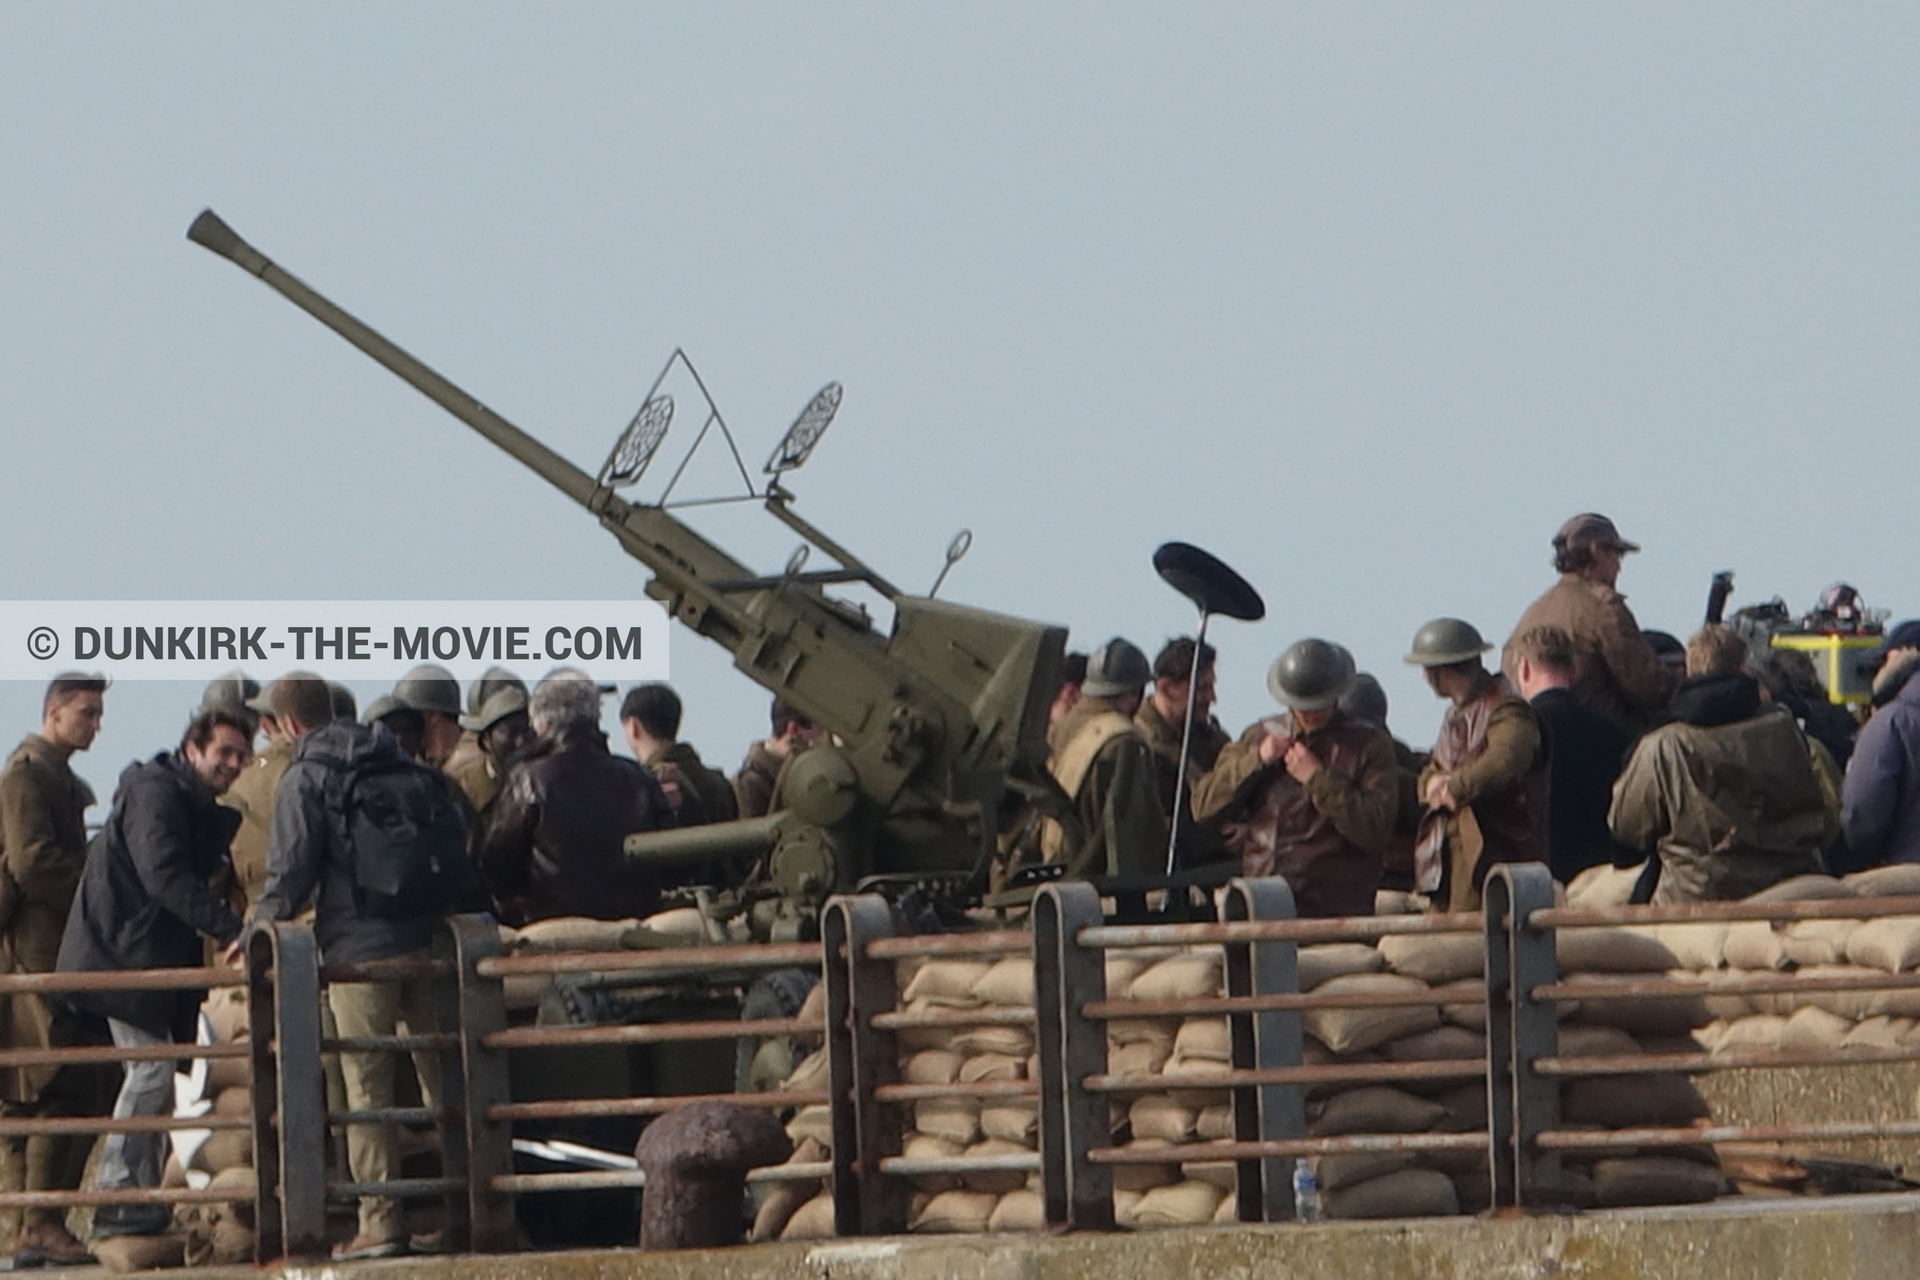 Picture with IMAX camera, cannon, supernumeraries, EST pier, Christopher Nolan, Nilo Otero,  from behind the scene of the Dunkirk movie by Nolan